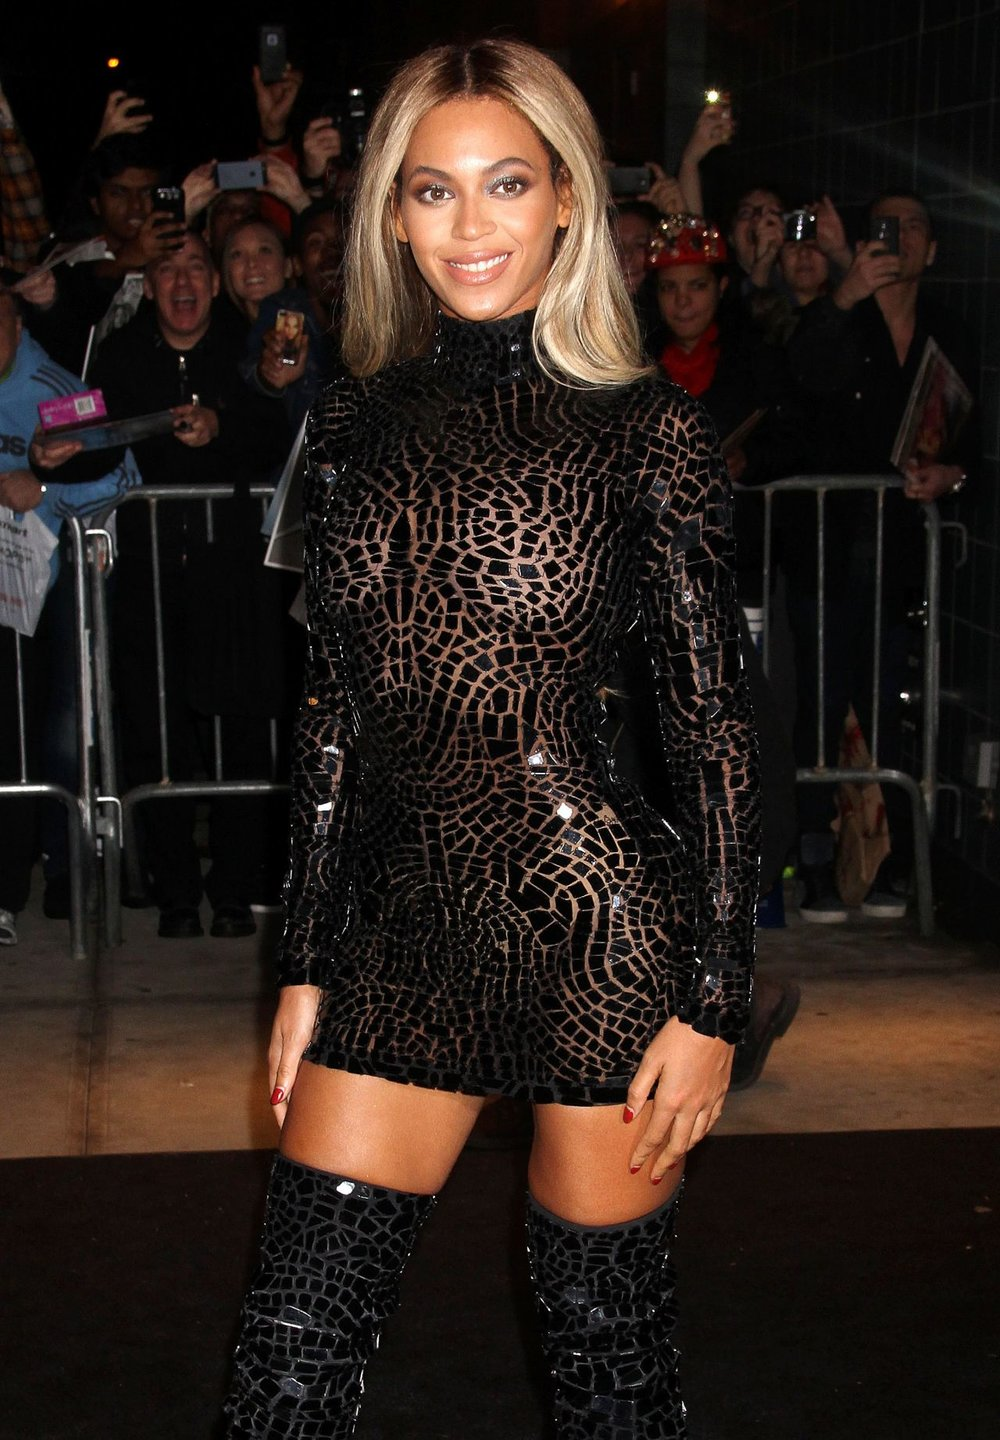 beyonce-knowles-style-for-a-party-for-her-new-album-at-sva-theater-in-new-york-city_1.jpg